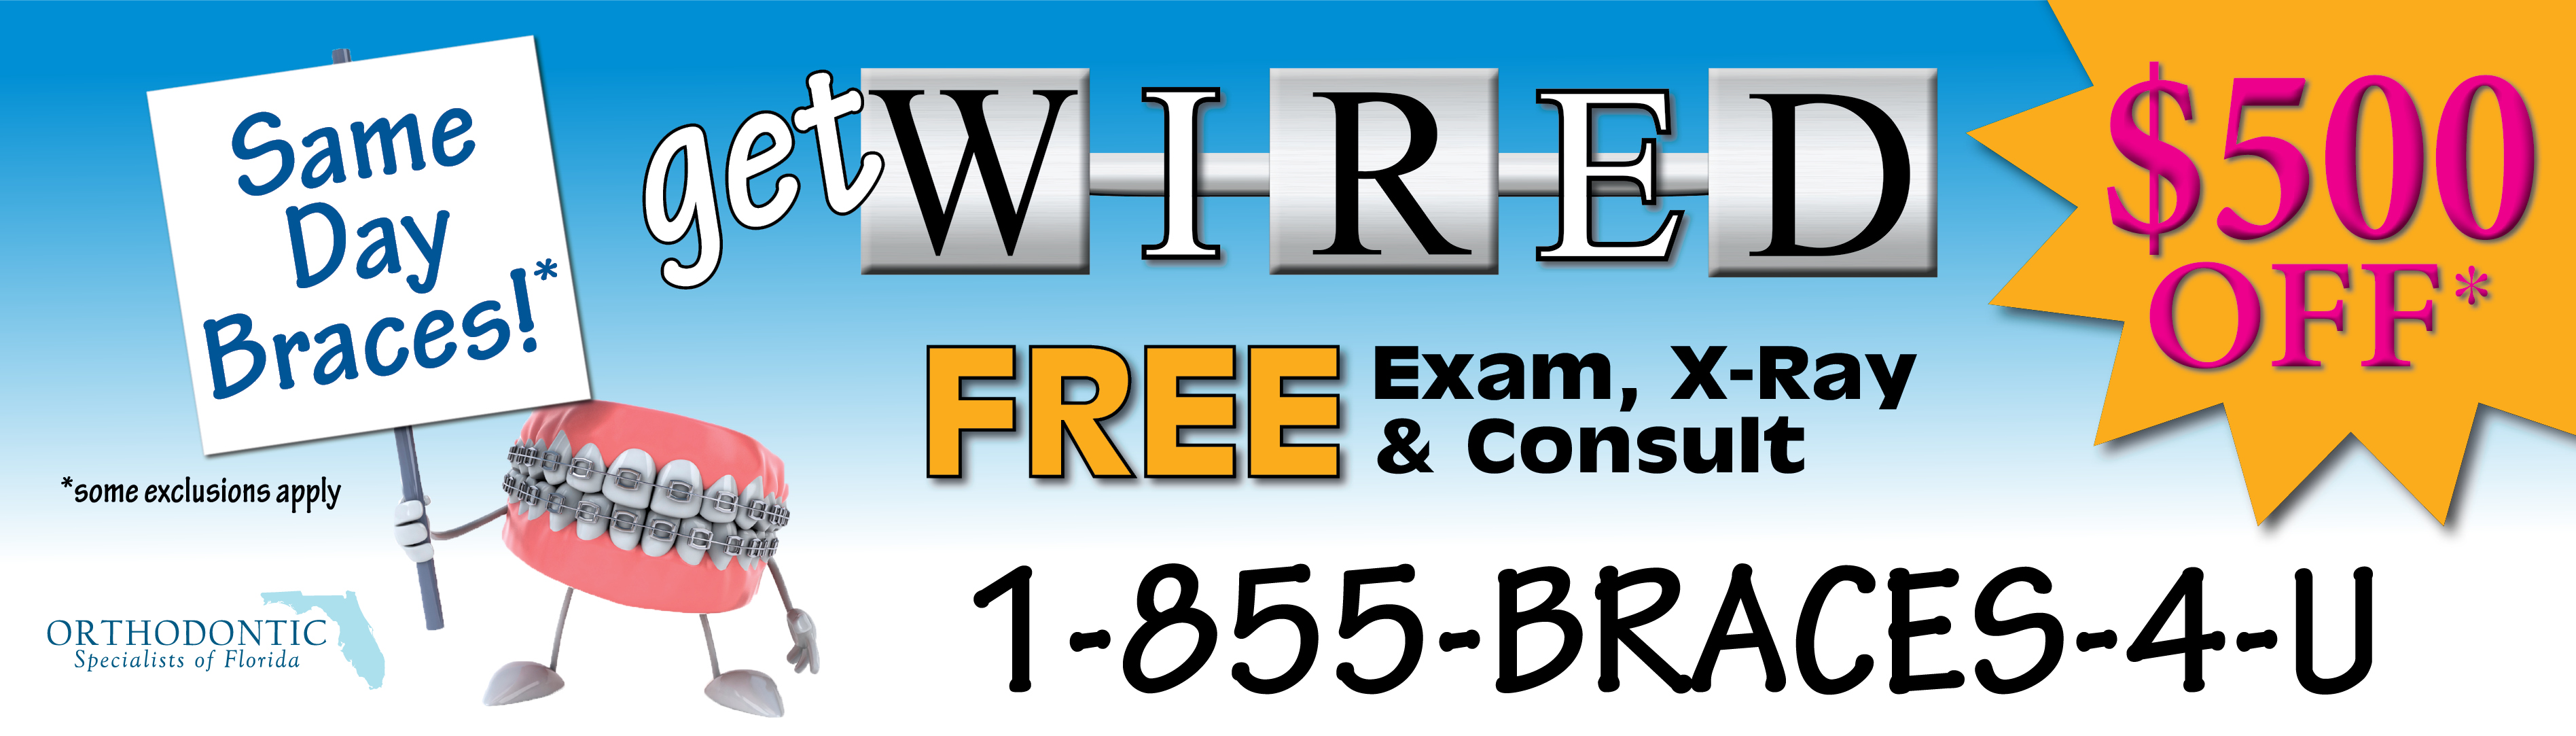 Wired Web Banner